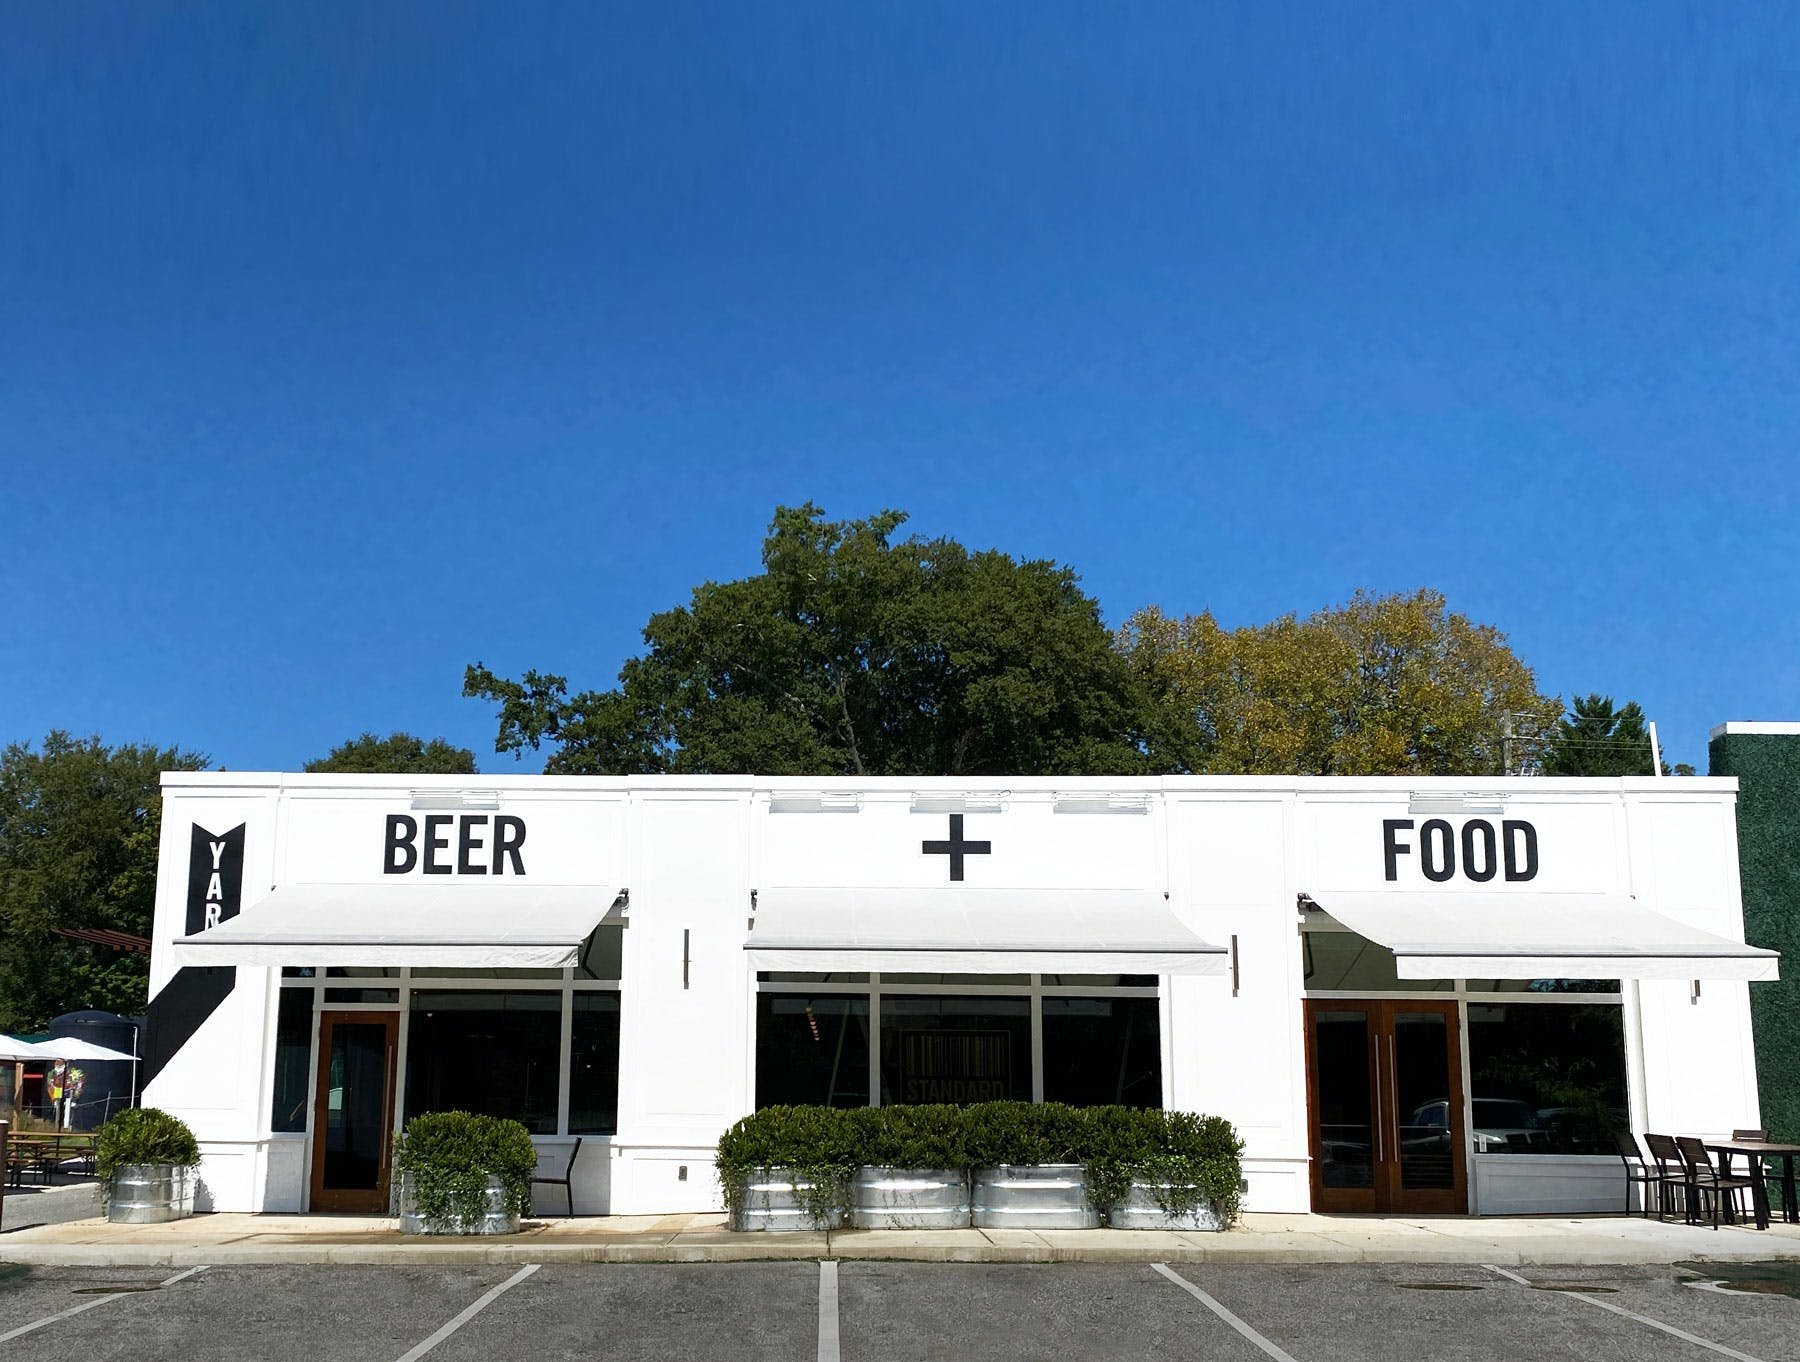 Outside of the taproom, street view